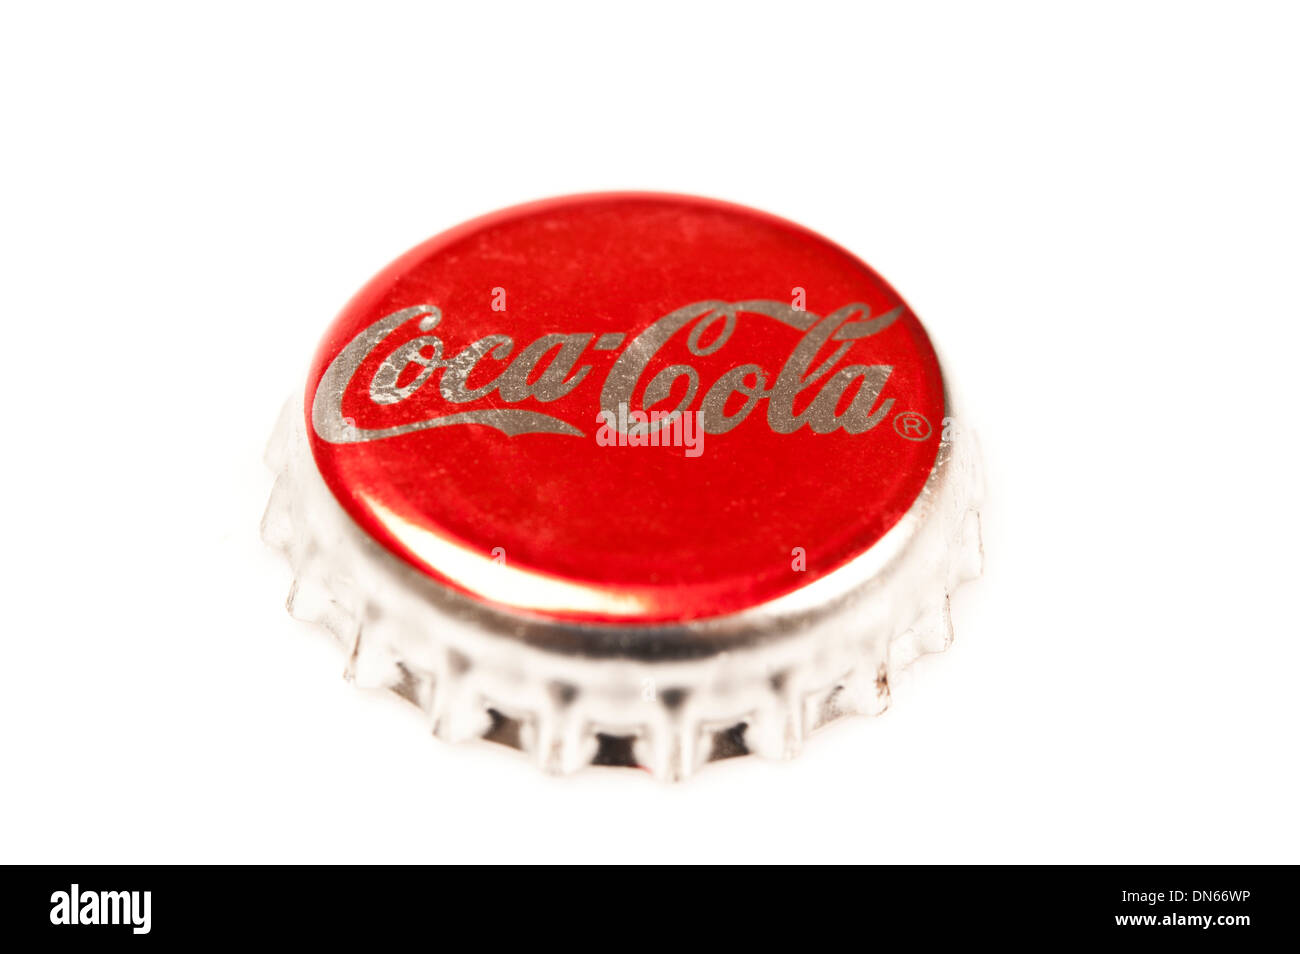 Coca Cola bottle cap - Stock Image